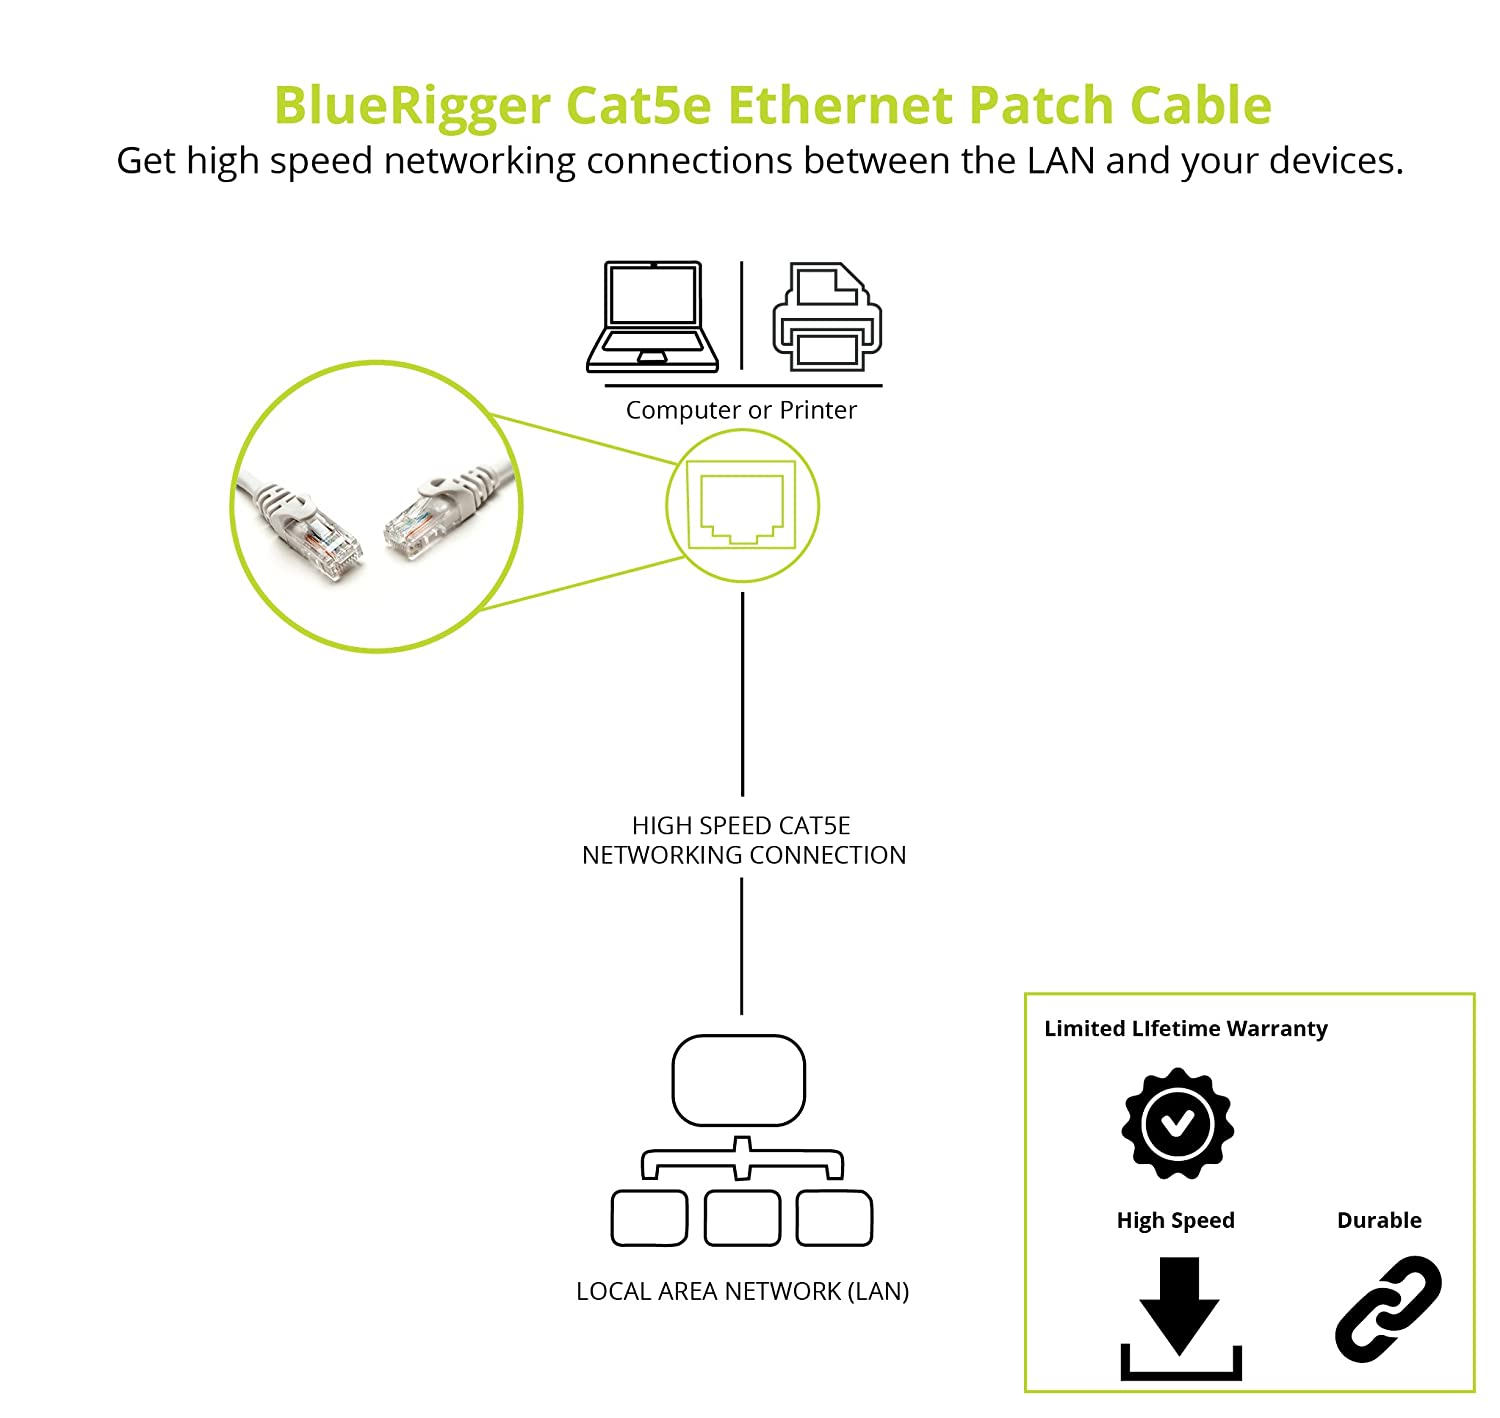 Amazon.com: BlueRigger Cat5e Ethernet Patch Cable (6 Feet, White):  Computers & Accessories